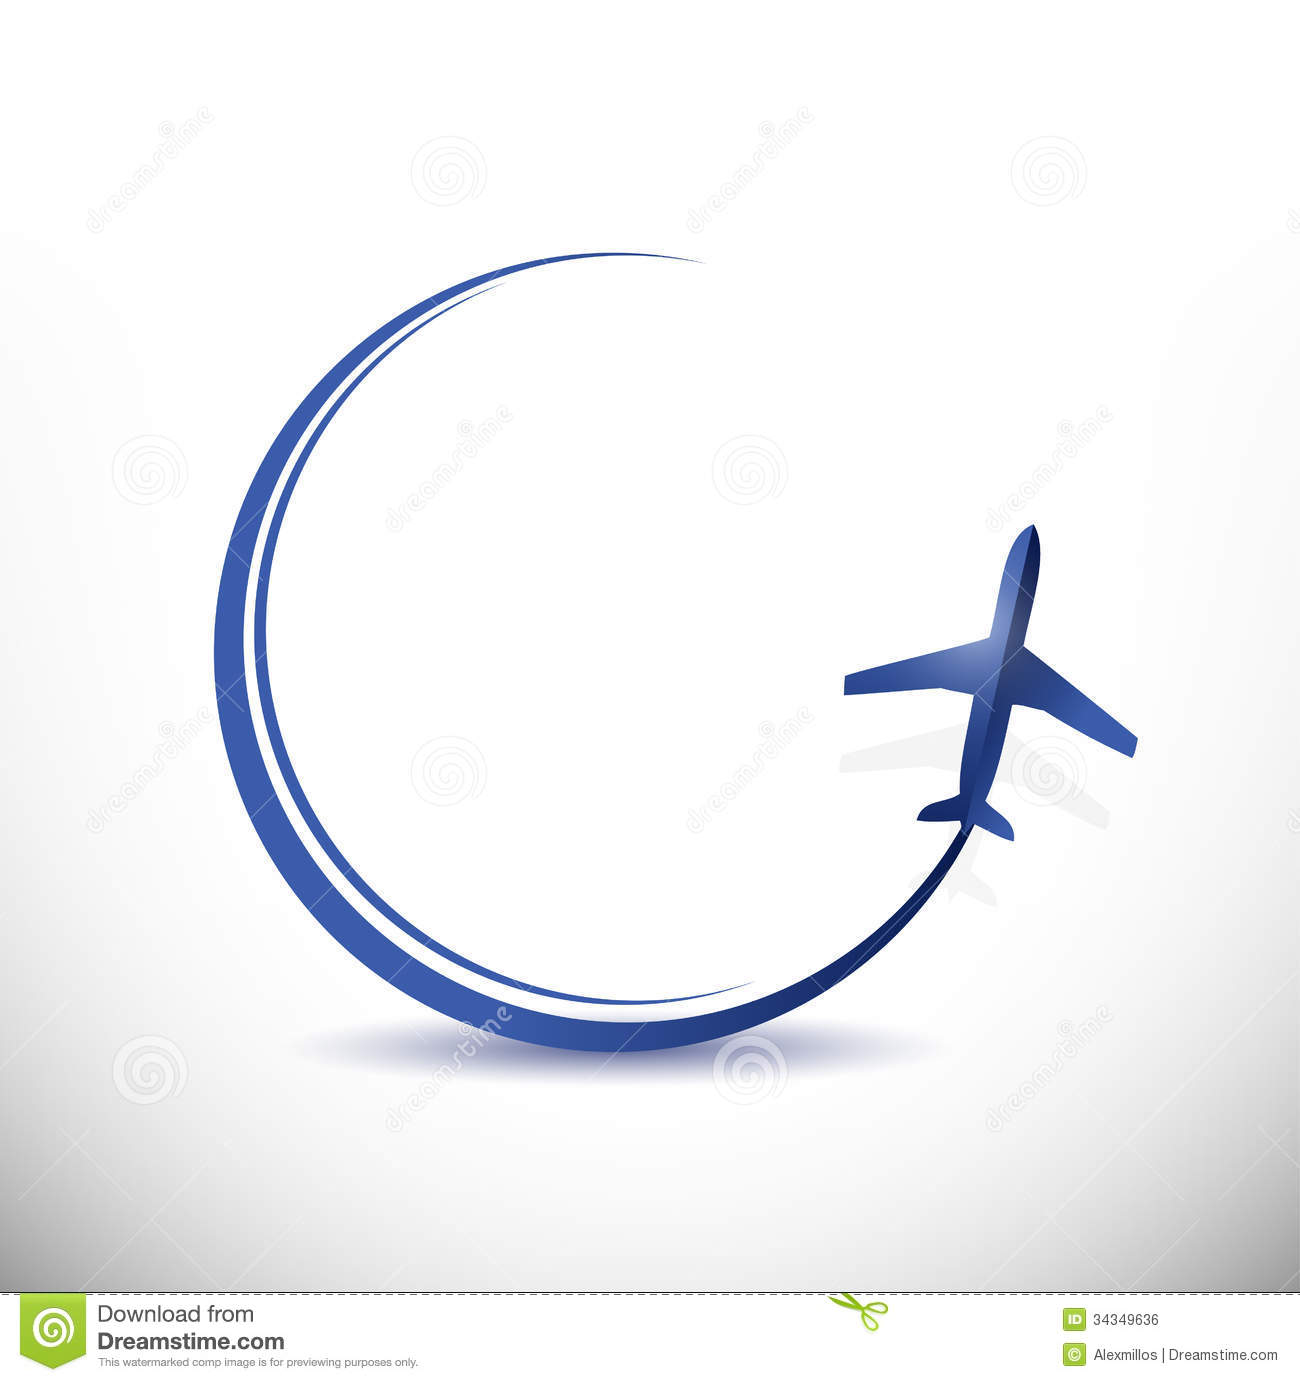 Plane Travel Destination Concept Illustration Royalty Free Stock Image